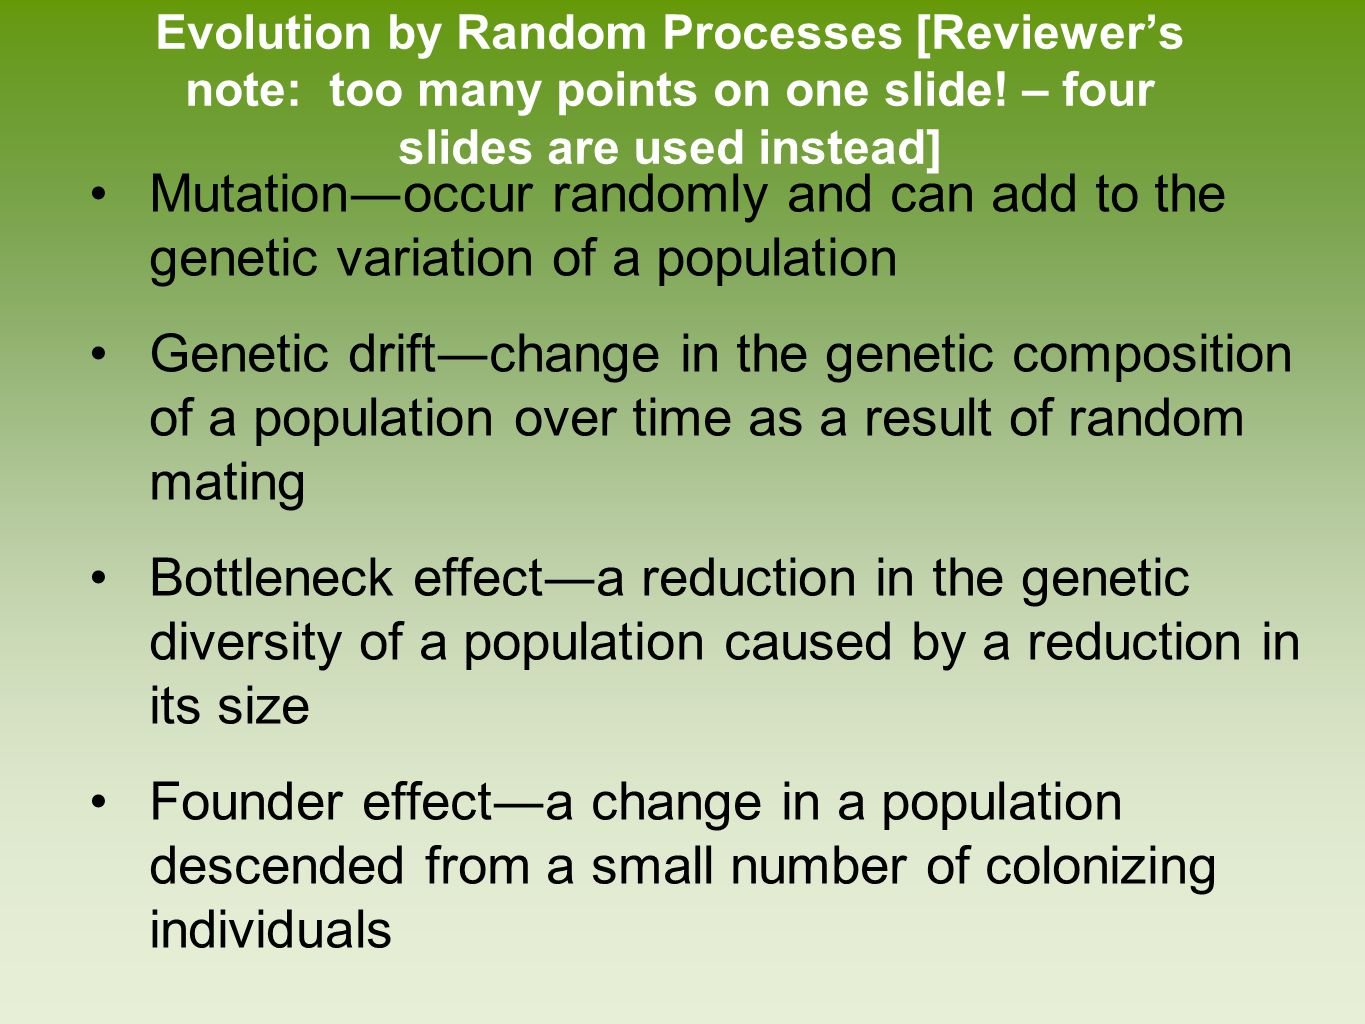 Evolution by Random Processes [Reviewer's note: too many points on one slide! – four slides are used instead]